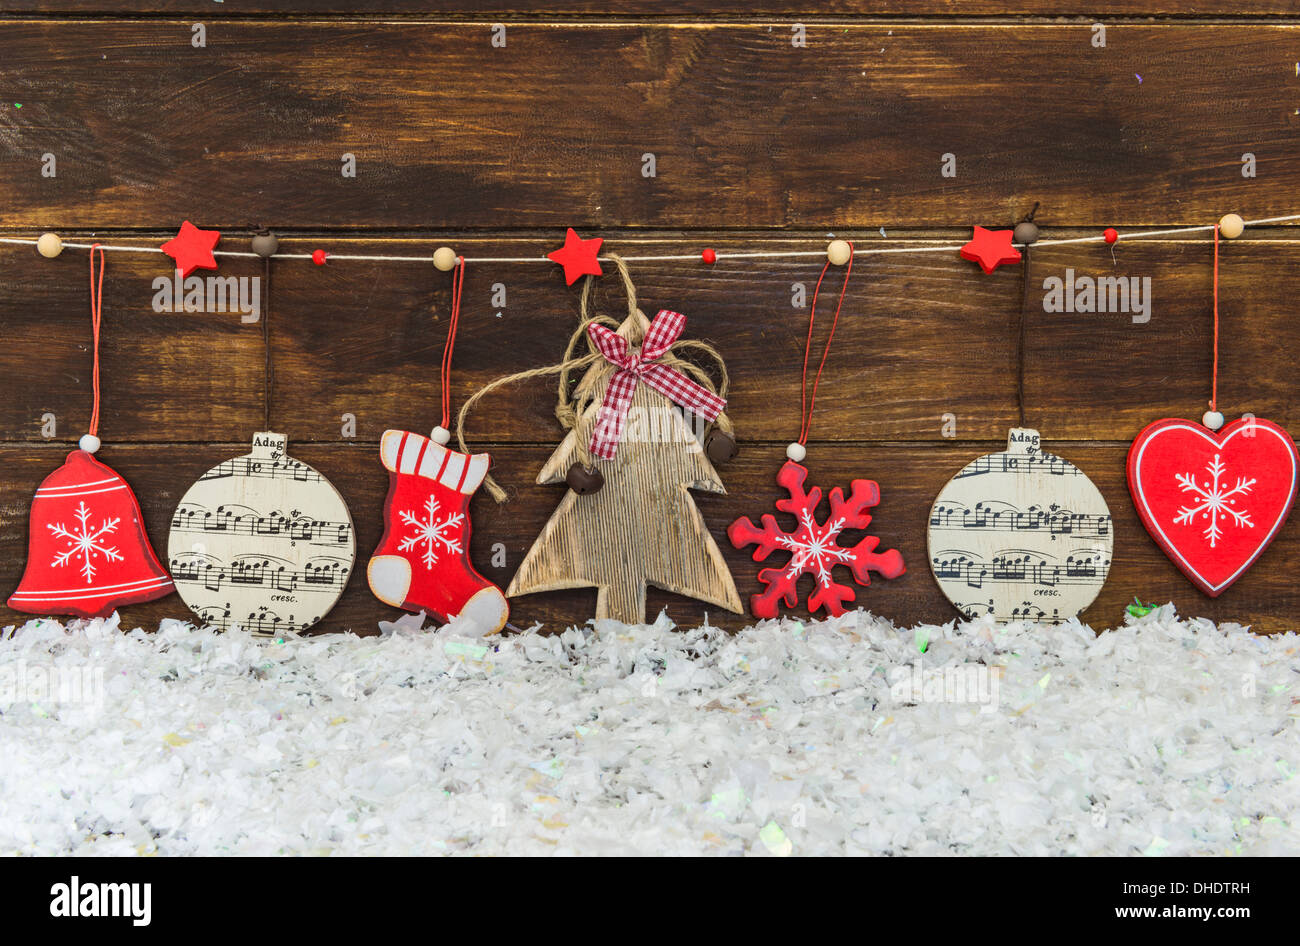 rustic shabby chic christmas decorations hanging on brown wooden board